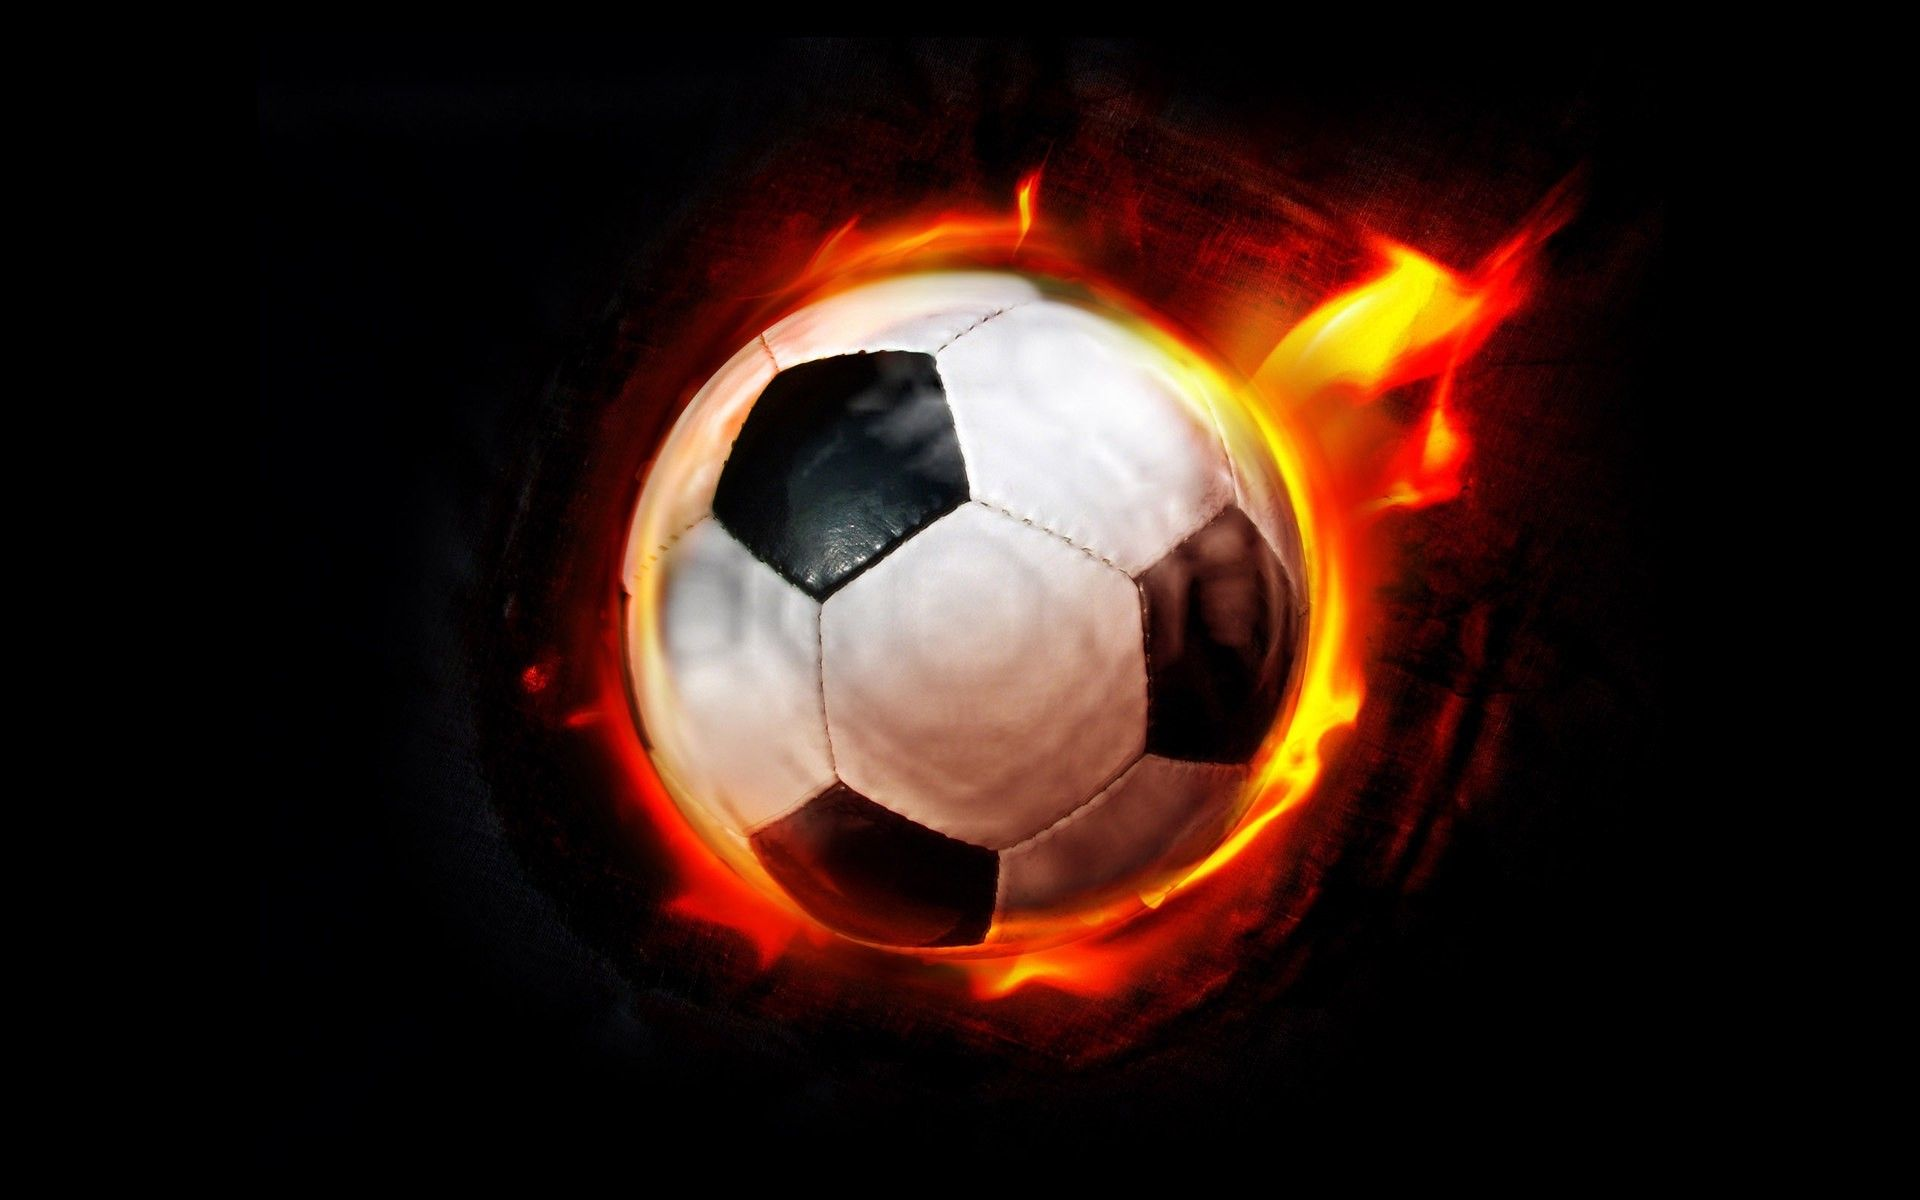 Cool Football Cool Football Backgrounds Soccer Ball Football Ball Soccer